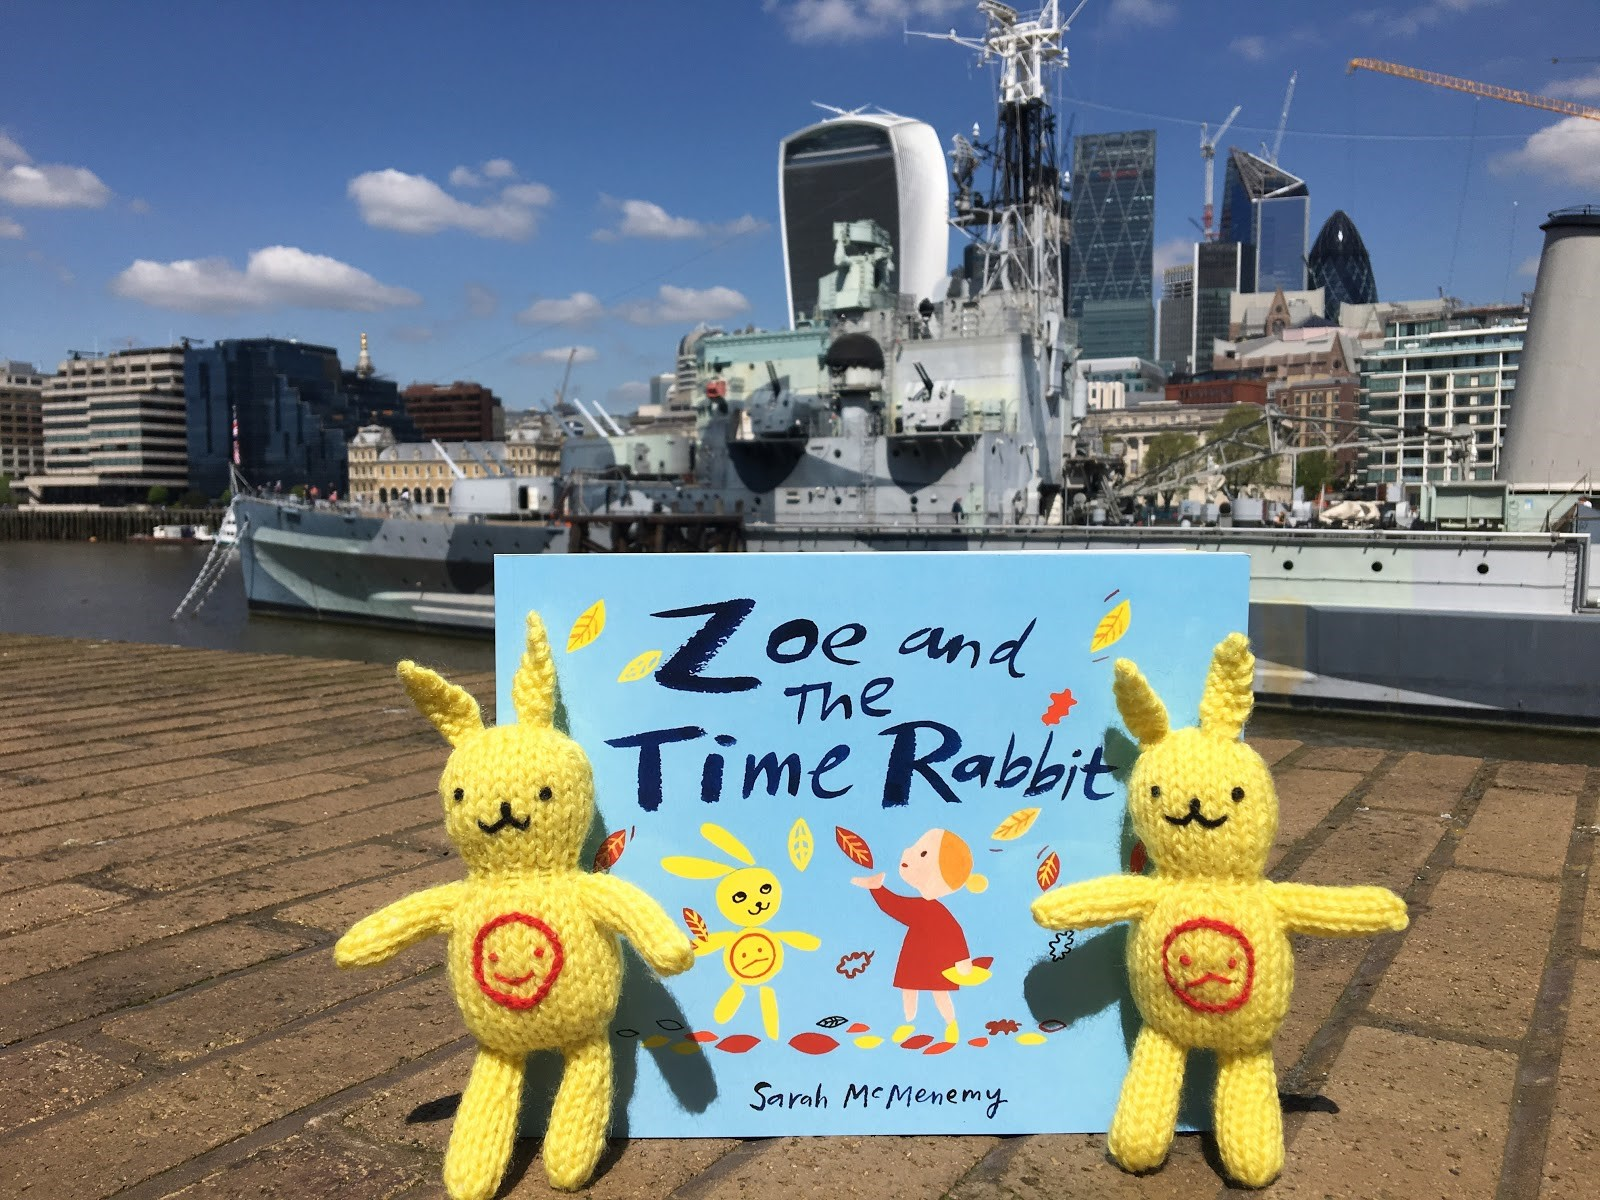 Zoe and the Time Rabbit by Sarah McMenemy